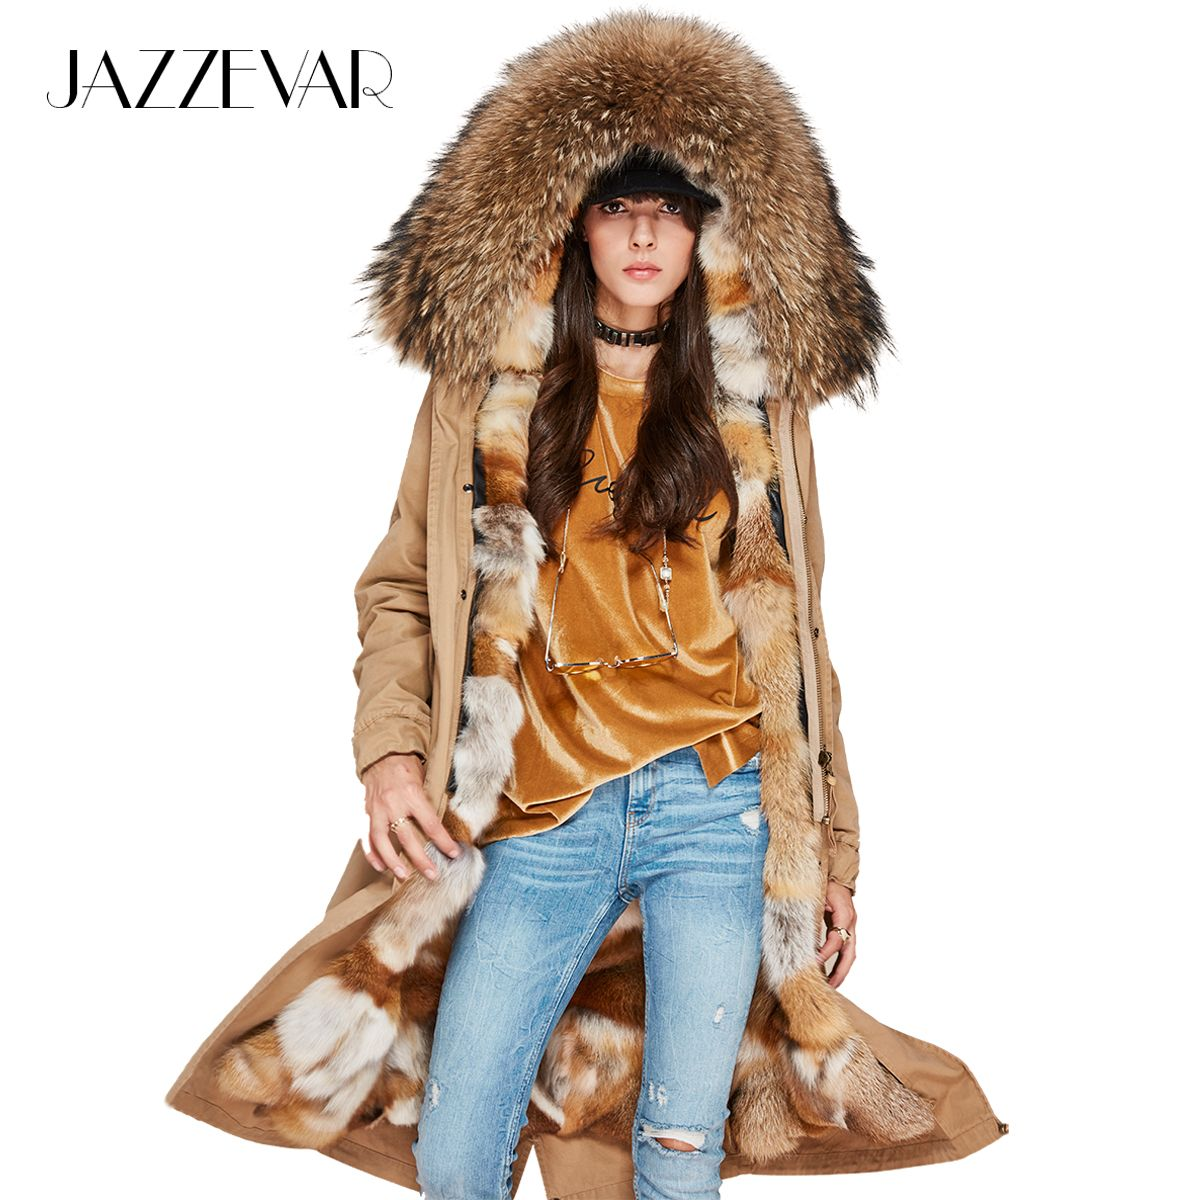 JAZZEVAR 2018 New Winter Fashion Woman Luxurious Real Fox fur lining X-Long Parka Large Raccoon fur Hooded Coat Military Jacket